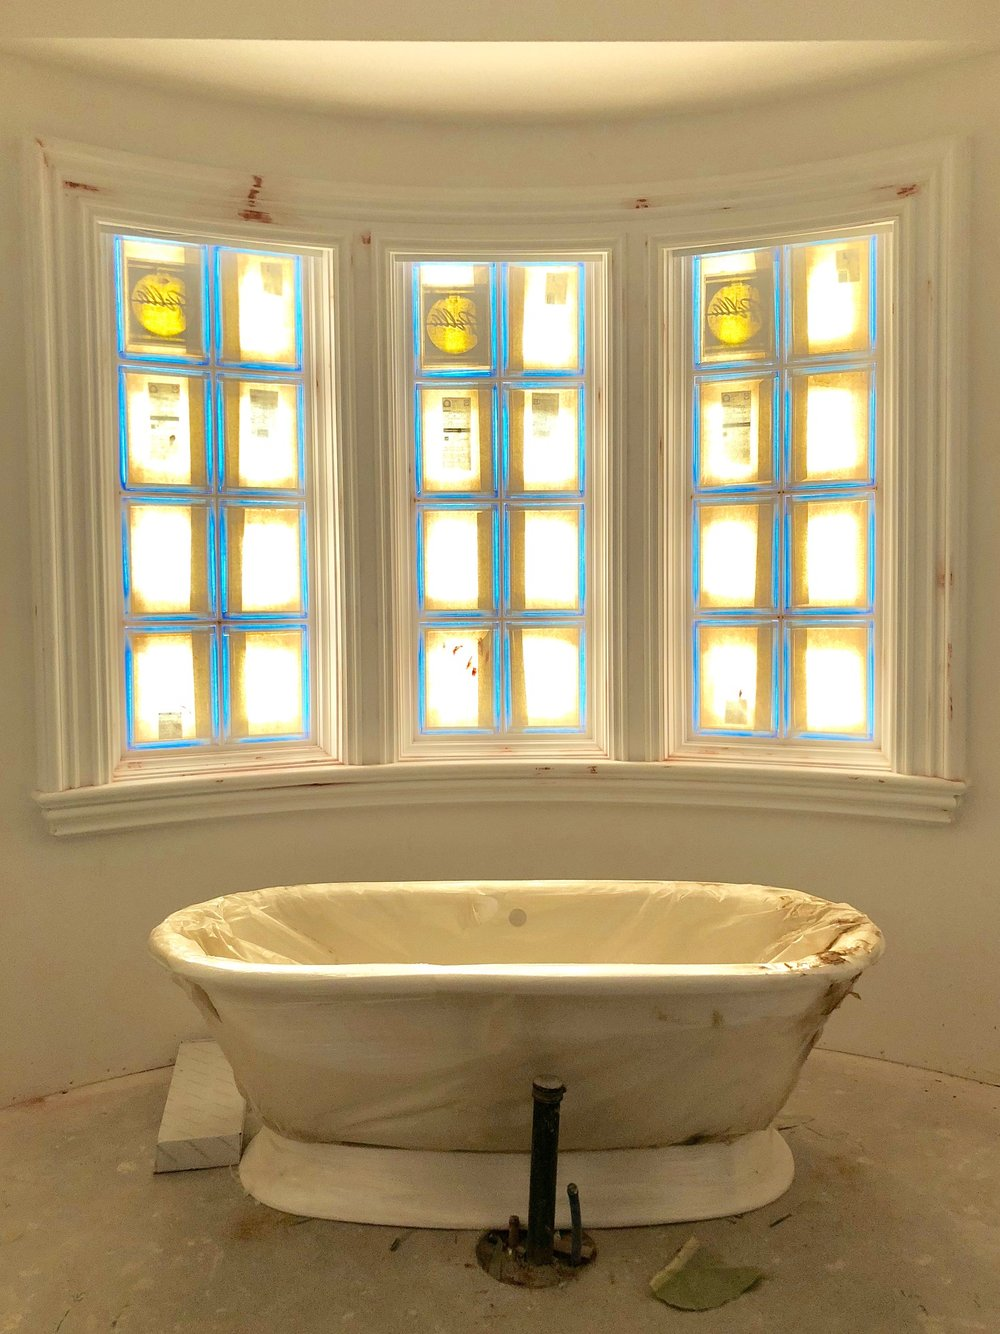 The master bathroom is big and beautiful, and this freestanding white porcelain bathtub adds a soft yet beautiful focal point that is easy to love. And could we love those windows any more?